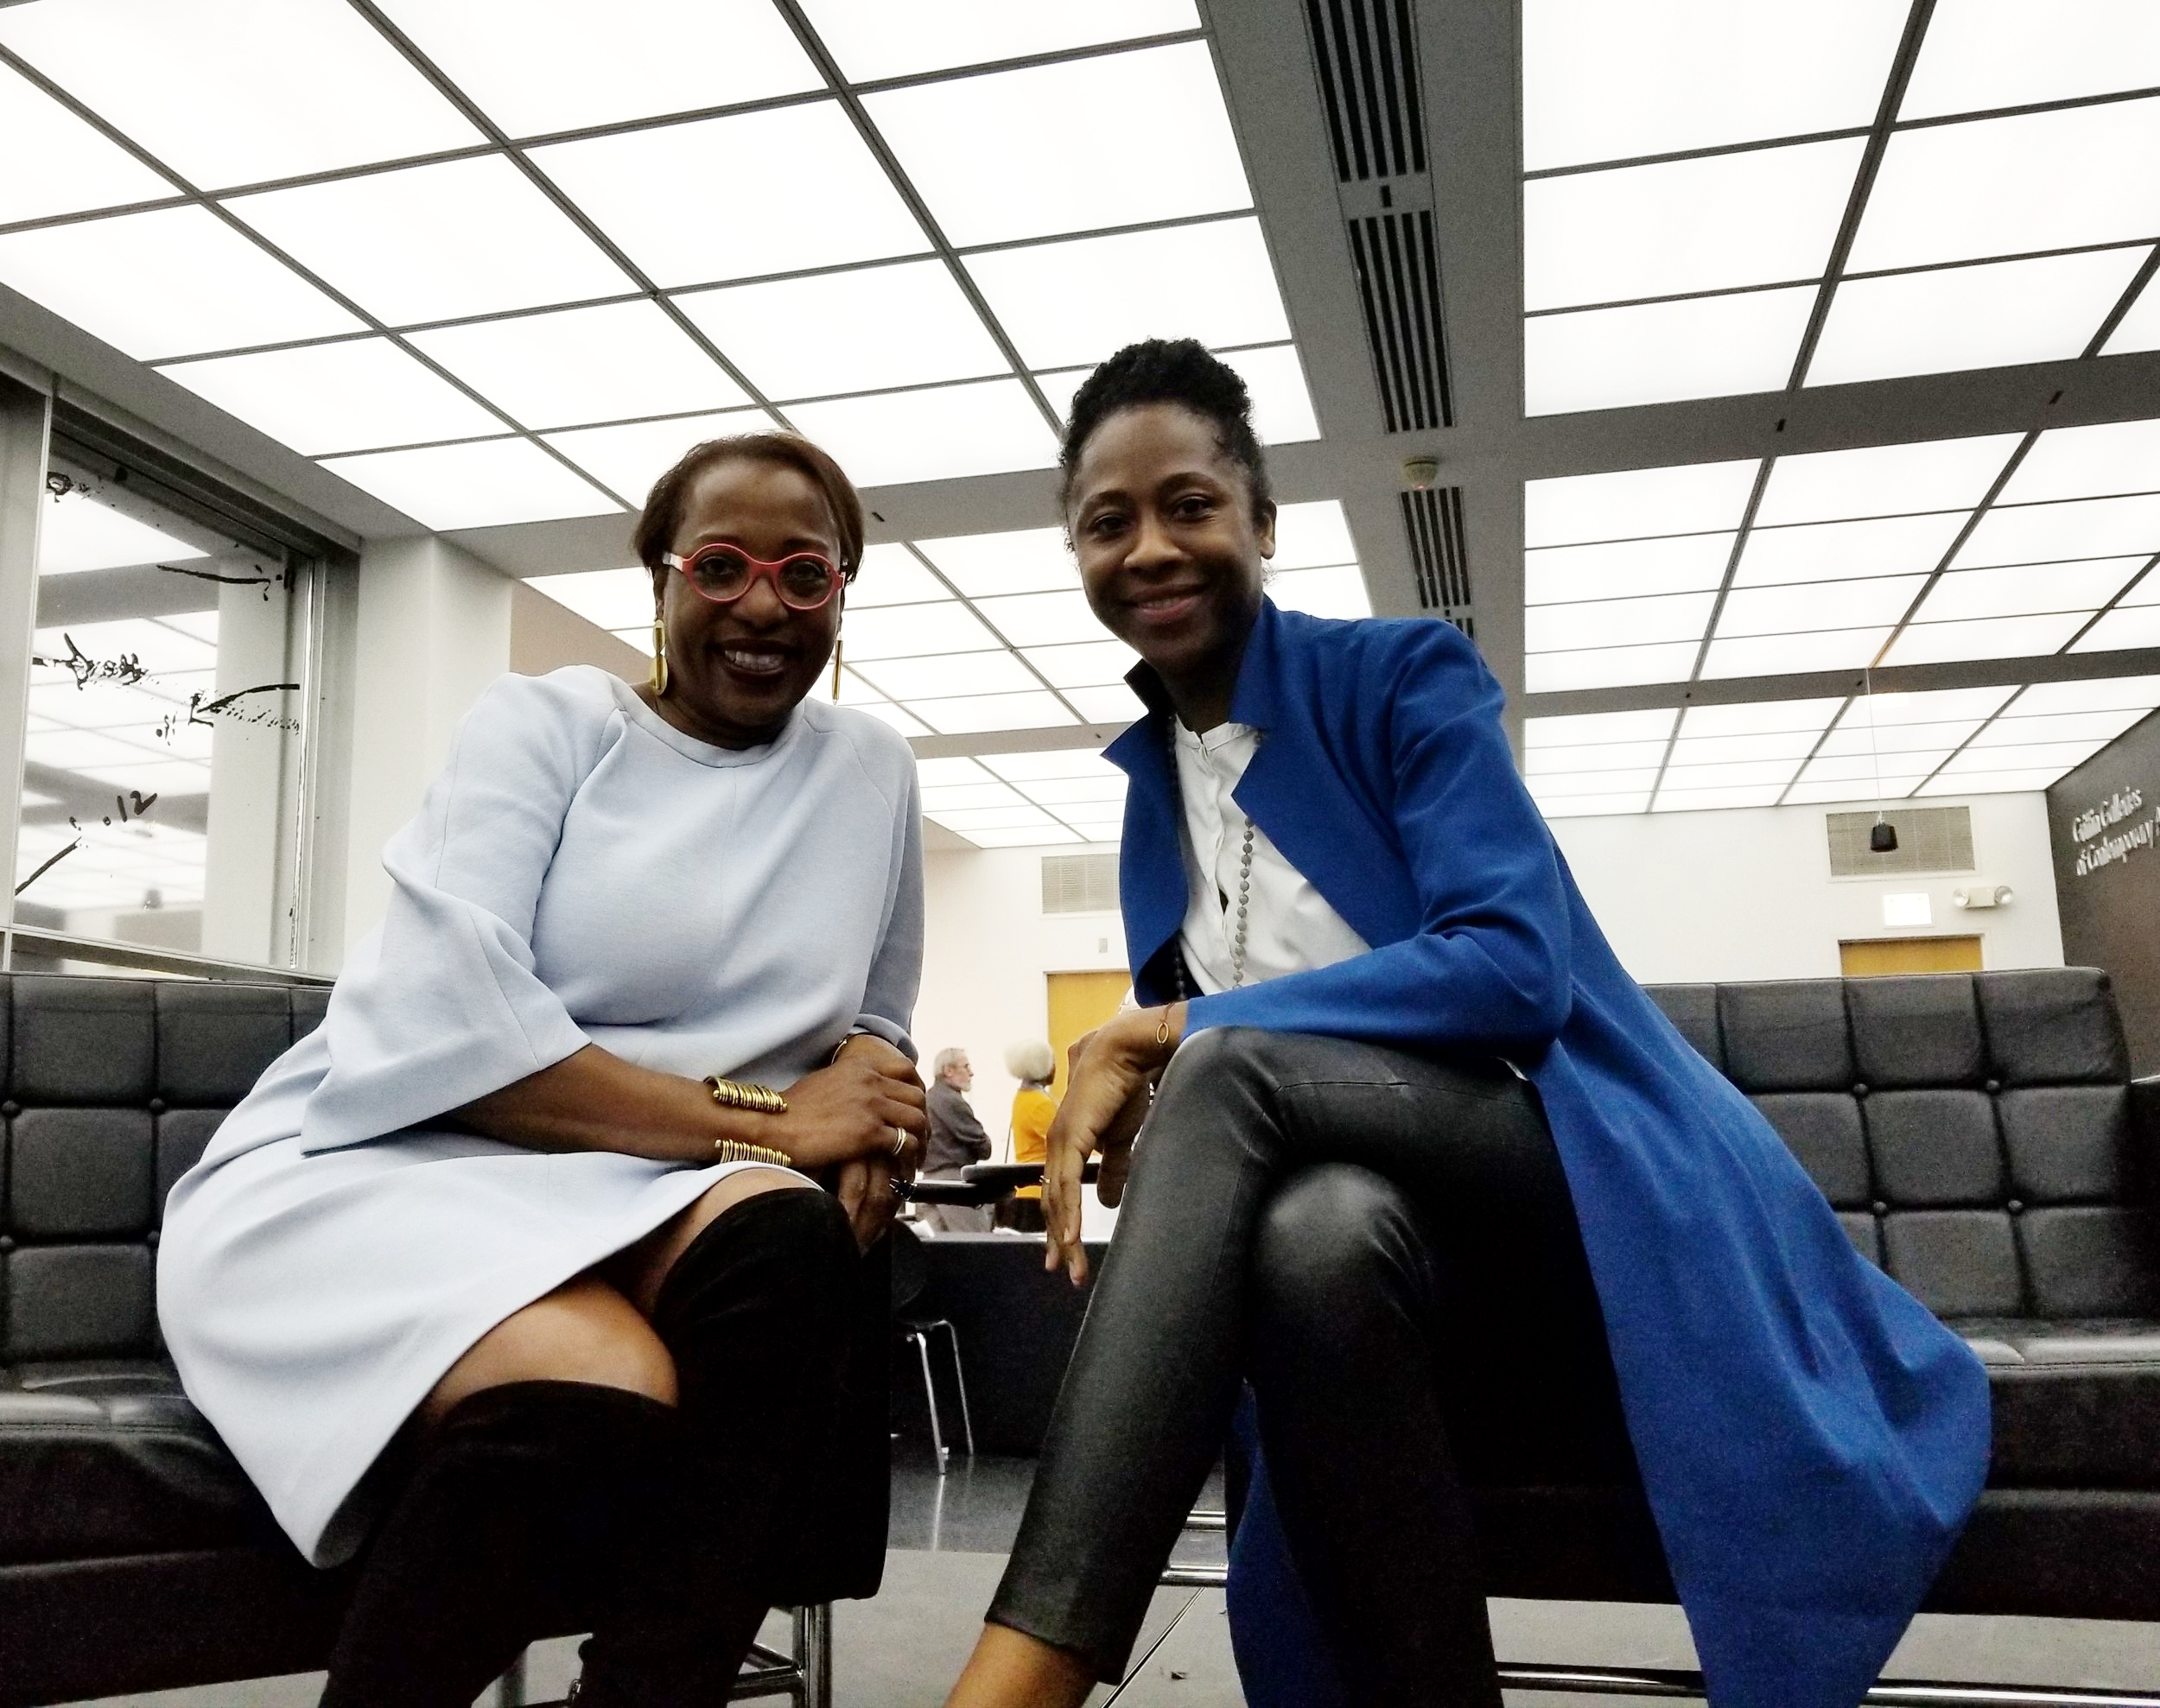 Virginia Museum of Fine Arts curator Valerie Cassel Oliver and MCA curator Naomi Beckwith